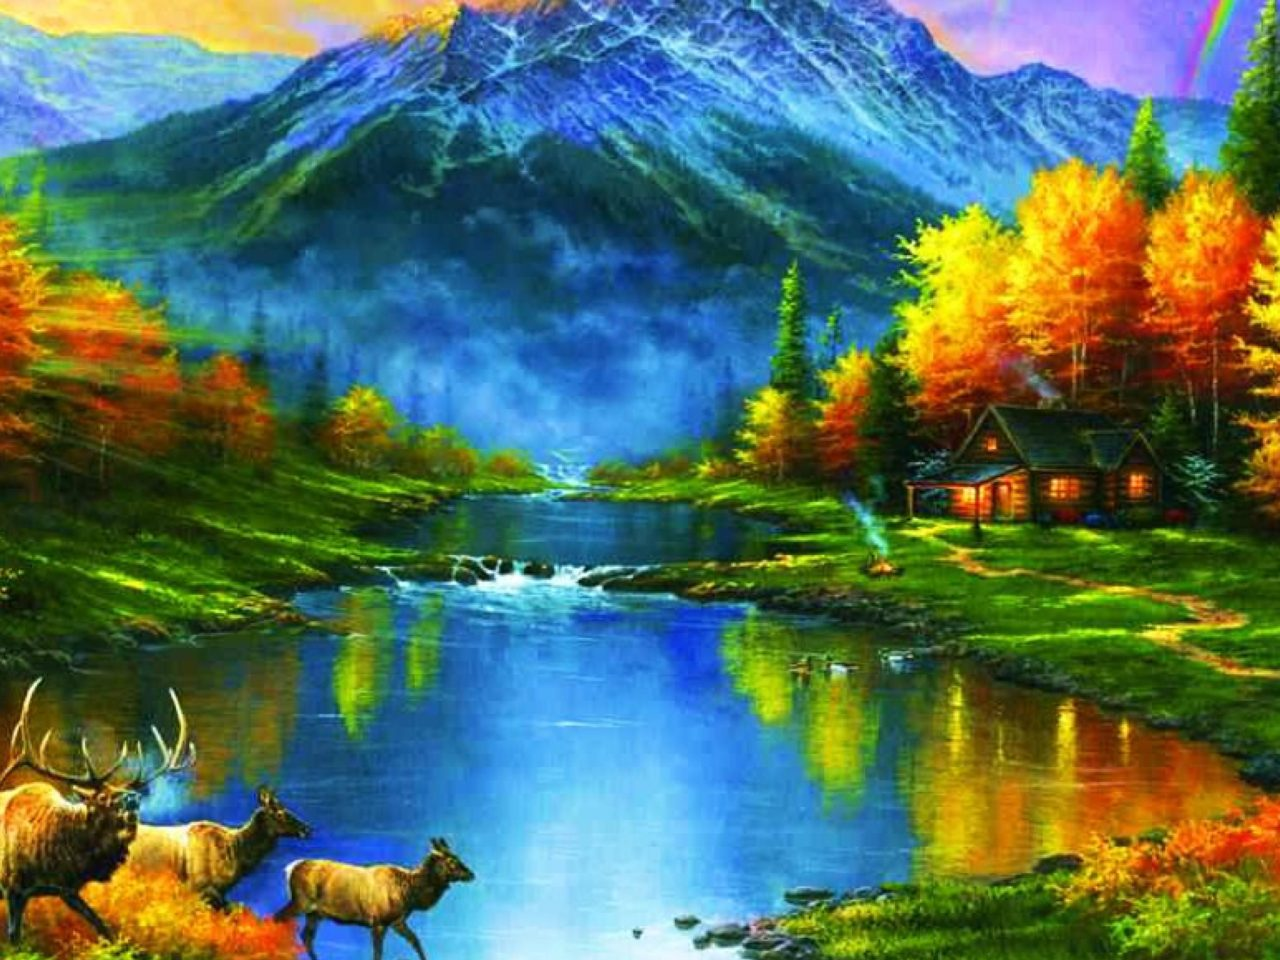 Fall Mountains Hd Wallpaper Pictures Mountains At Fall Trees Leaves Lakes Colors Ultra Hd